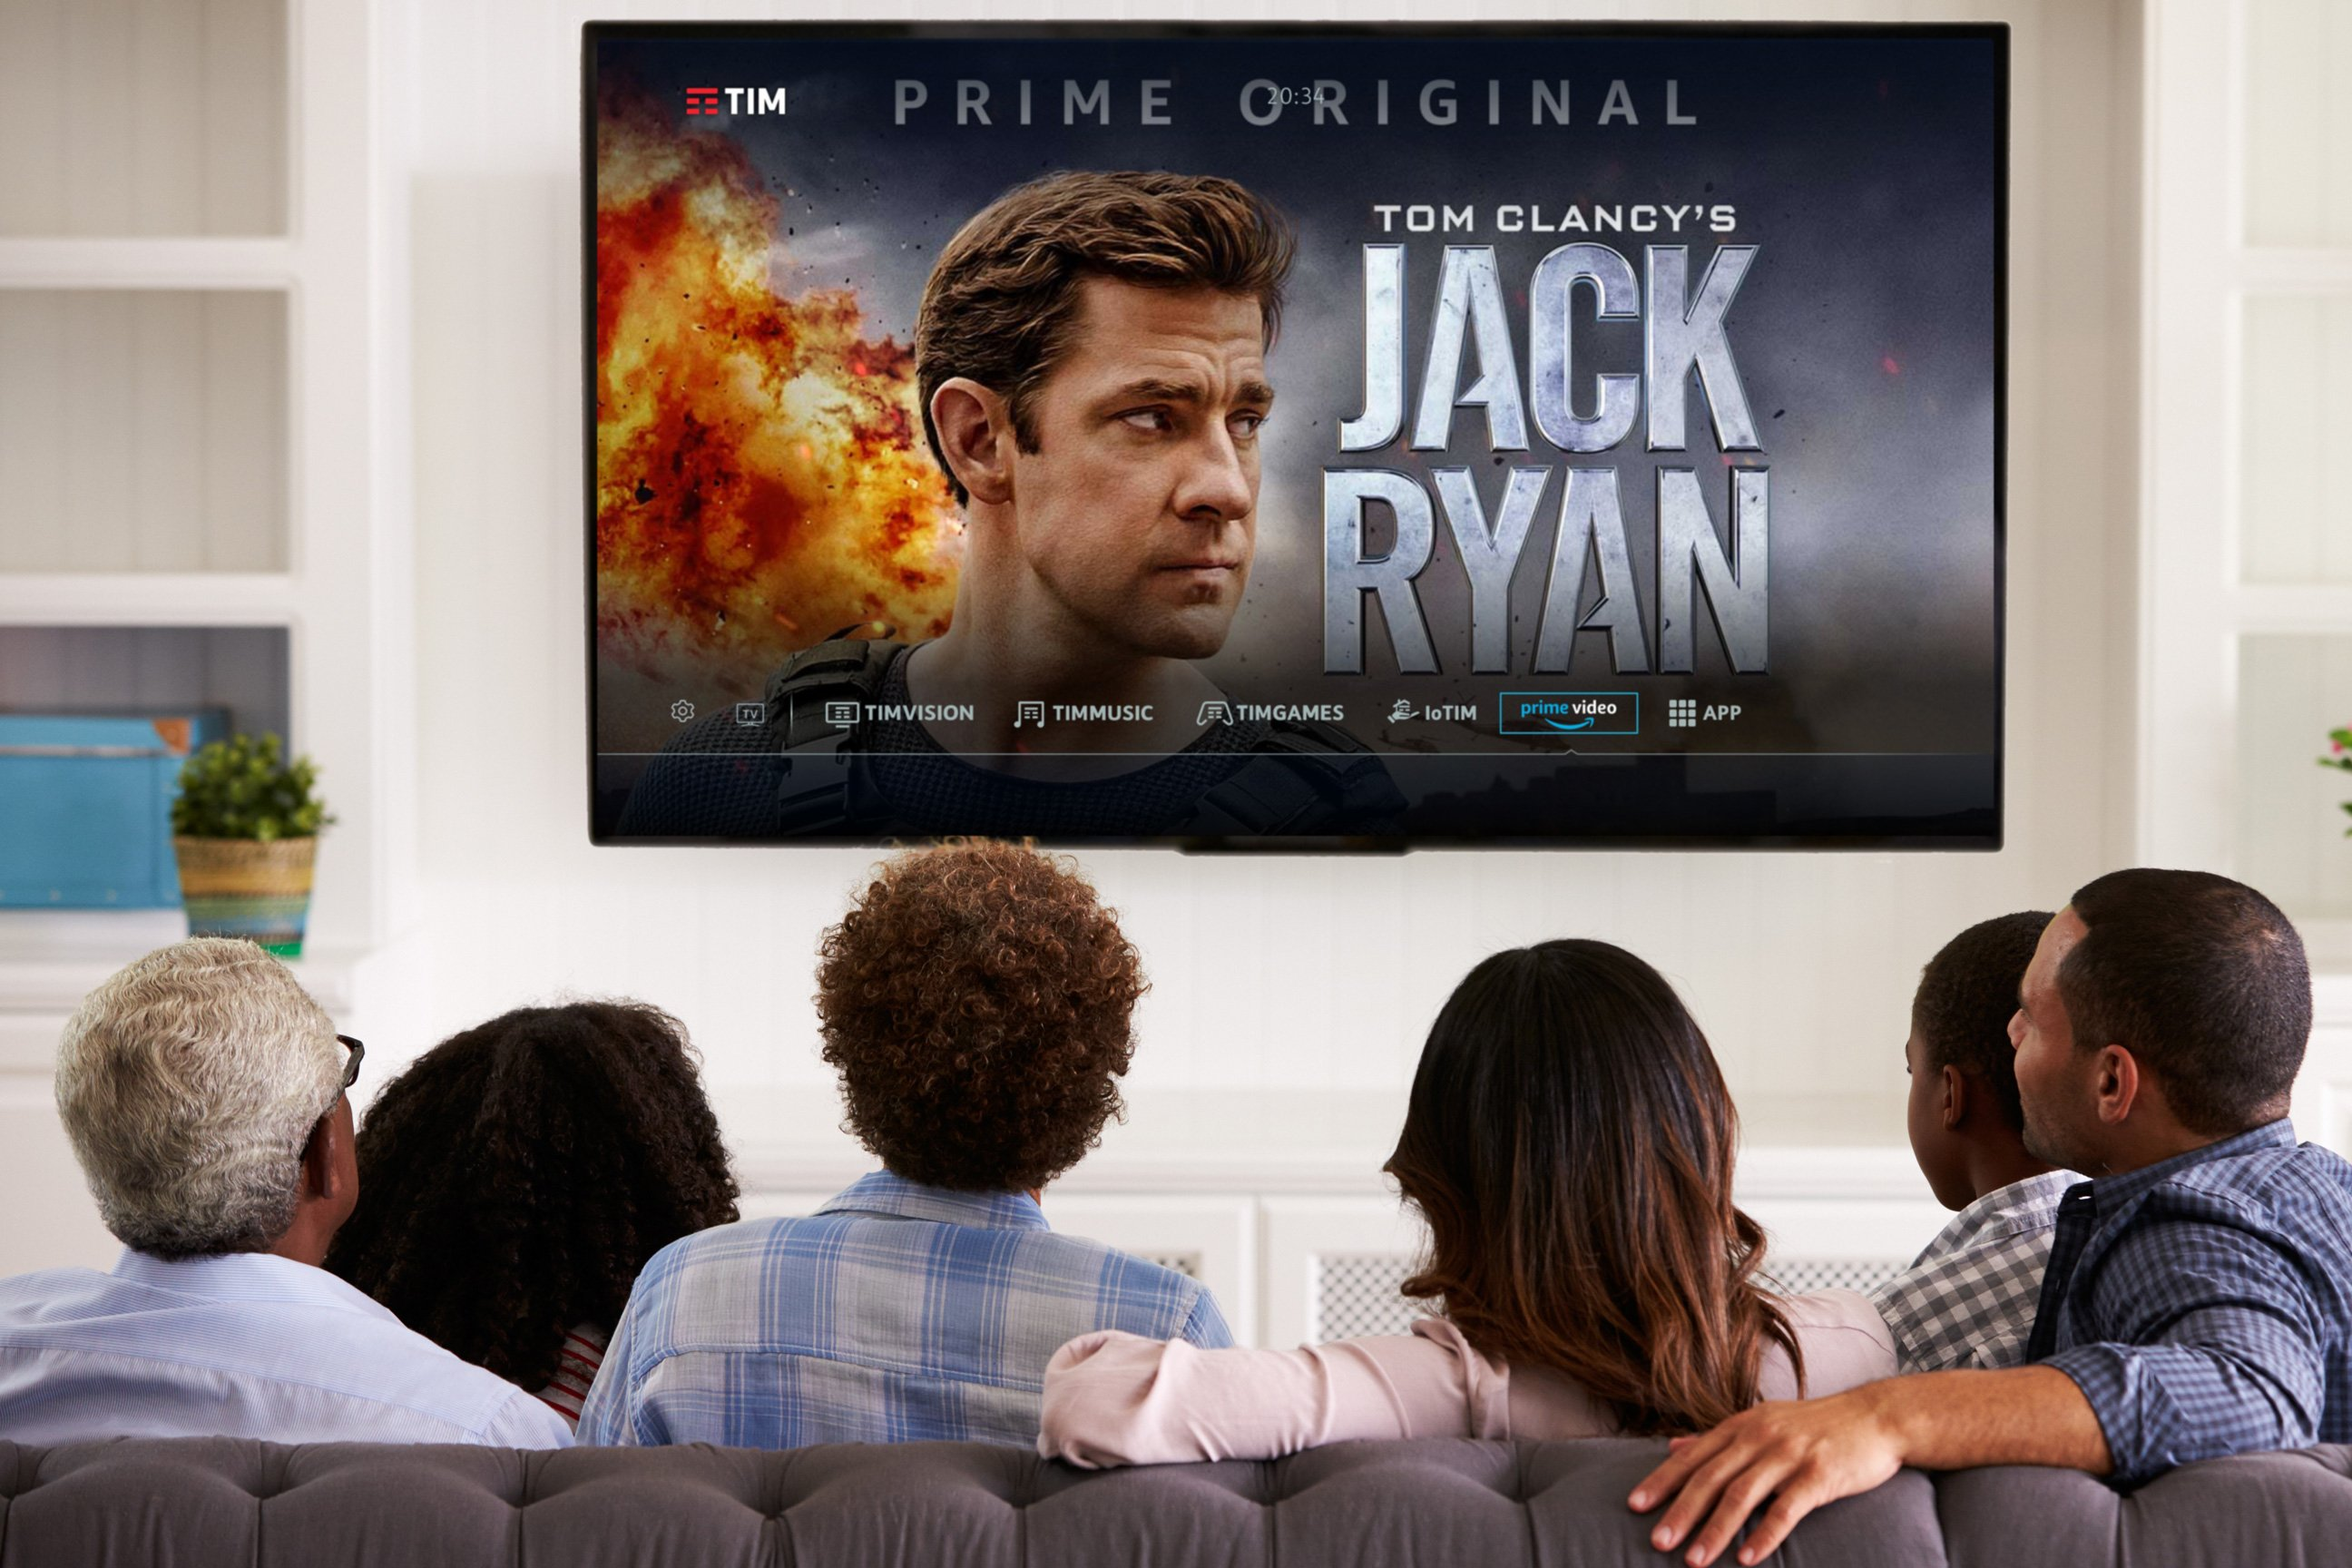 TIM e Amazon lanciano Prime Video sul decoder TIM Box di TIMVISION